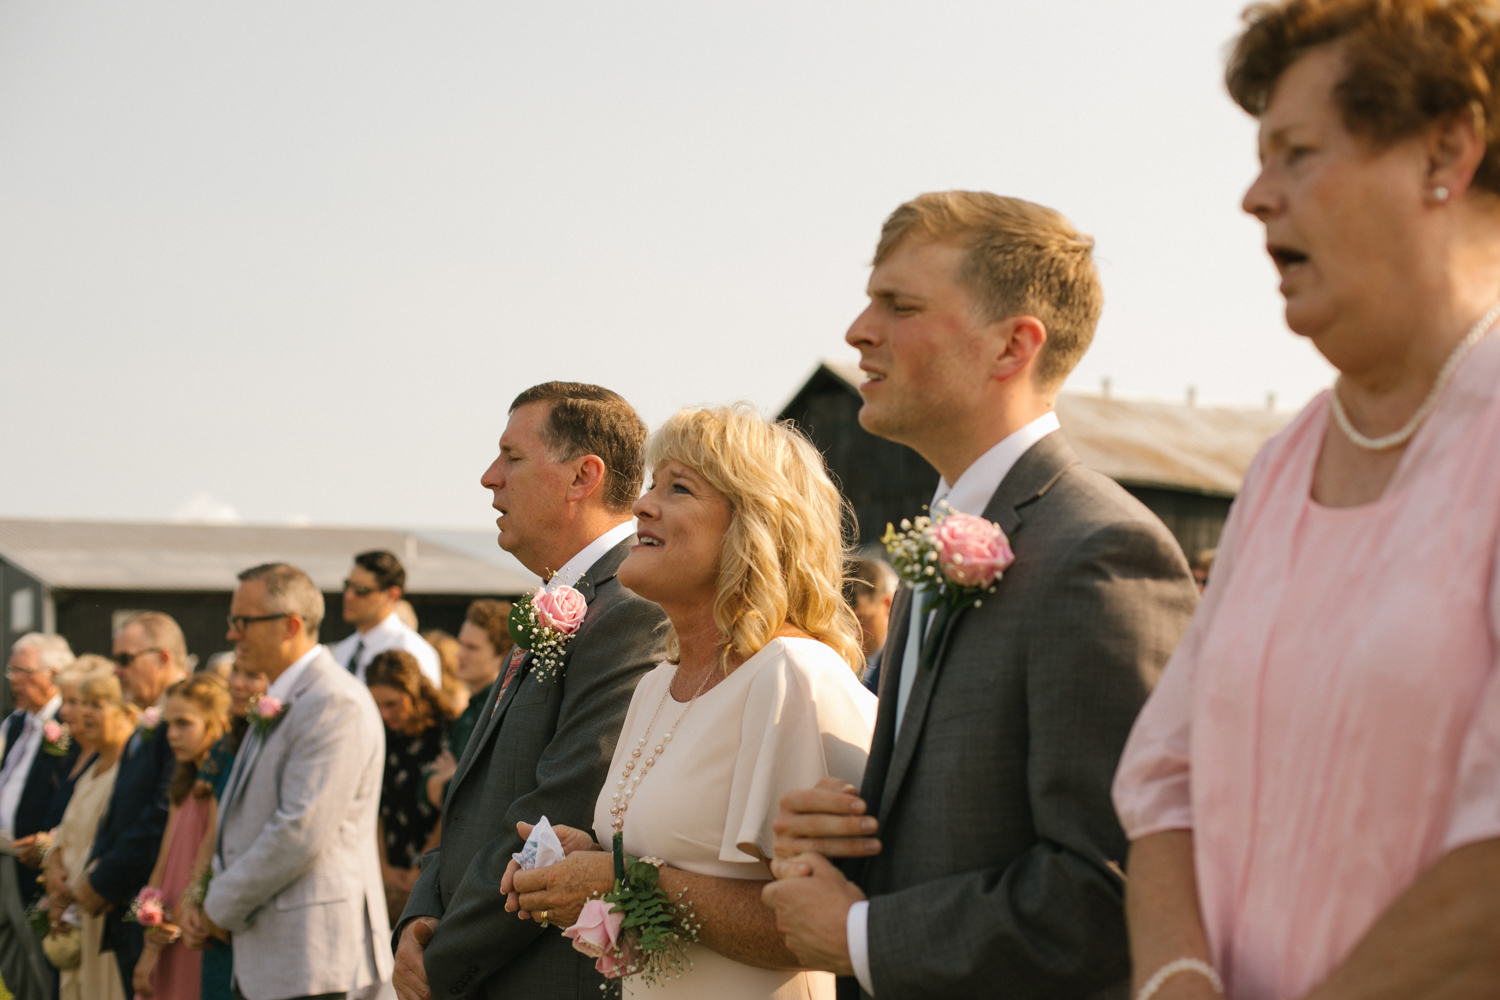 2019.06.01_CraskWedding_Starks-102.jpg